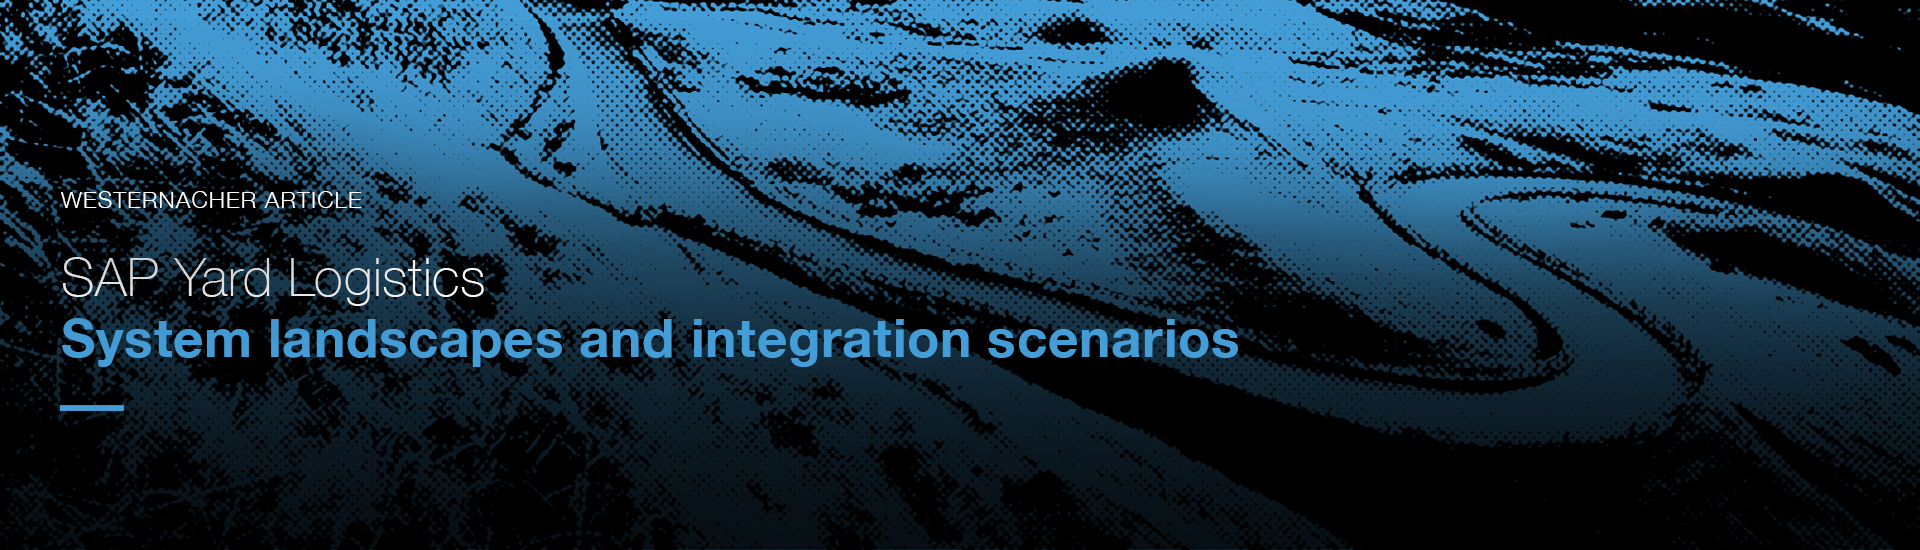 SAP Yard Logistics – System landscapes and integration scenarios.